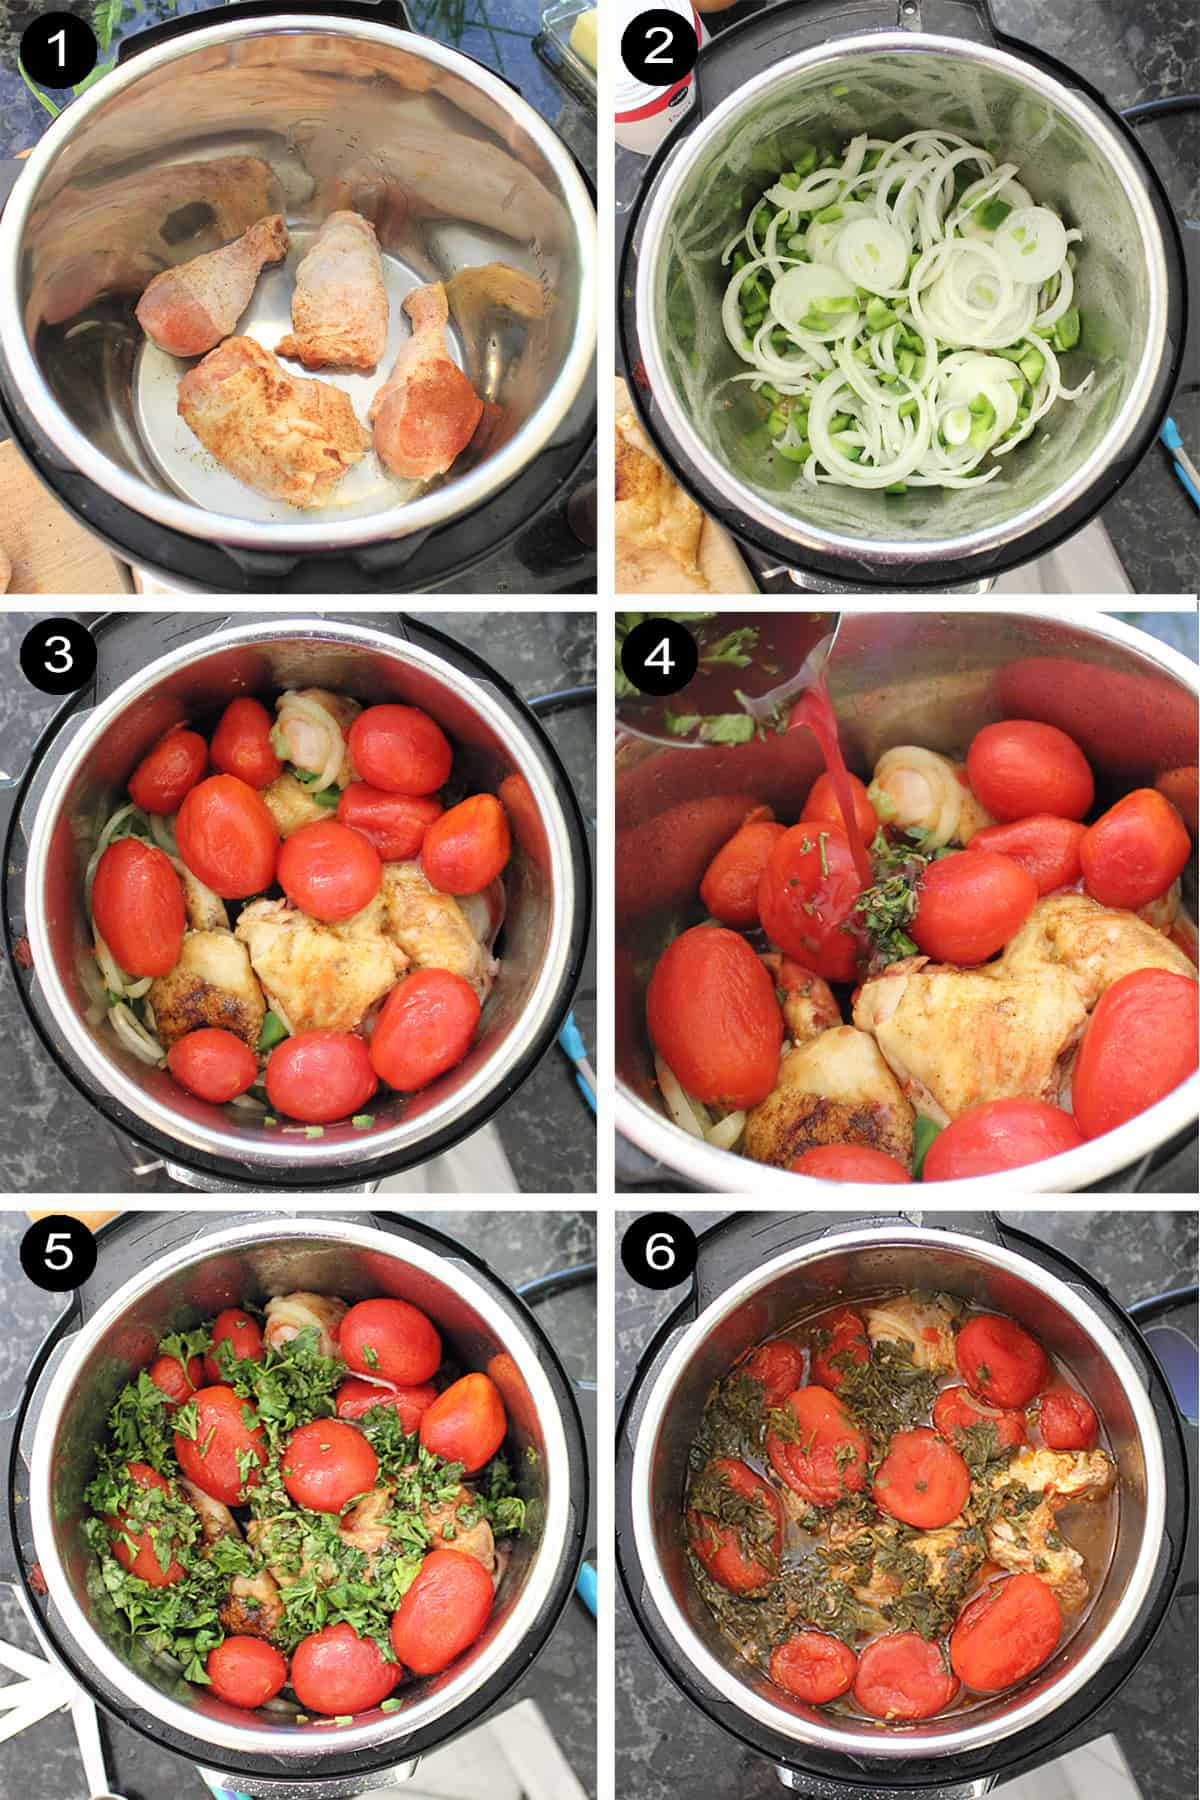 Prep steps 1-6 for cooking in instant pot.